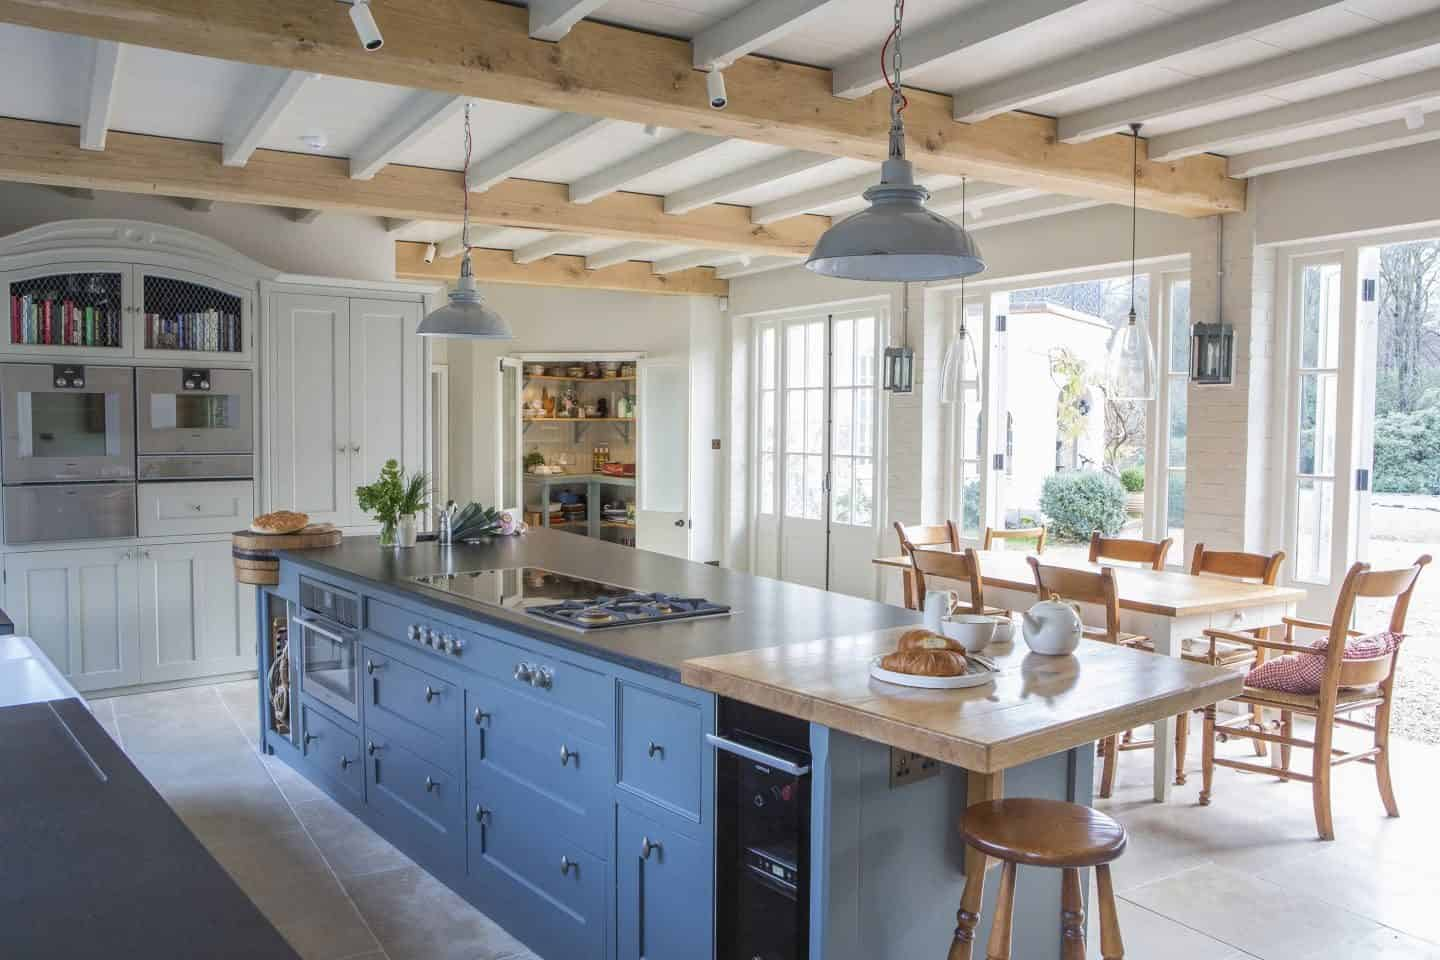 Traditional style country kitchen in blue by Mark Taylor Design